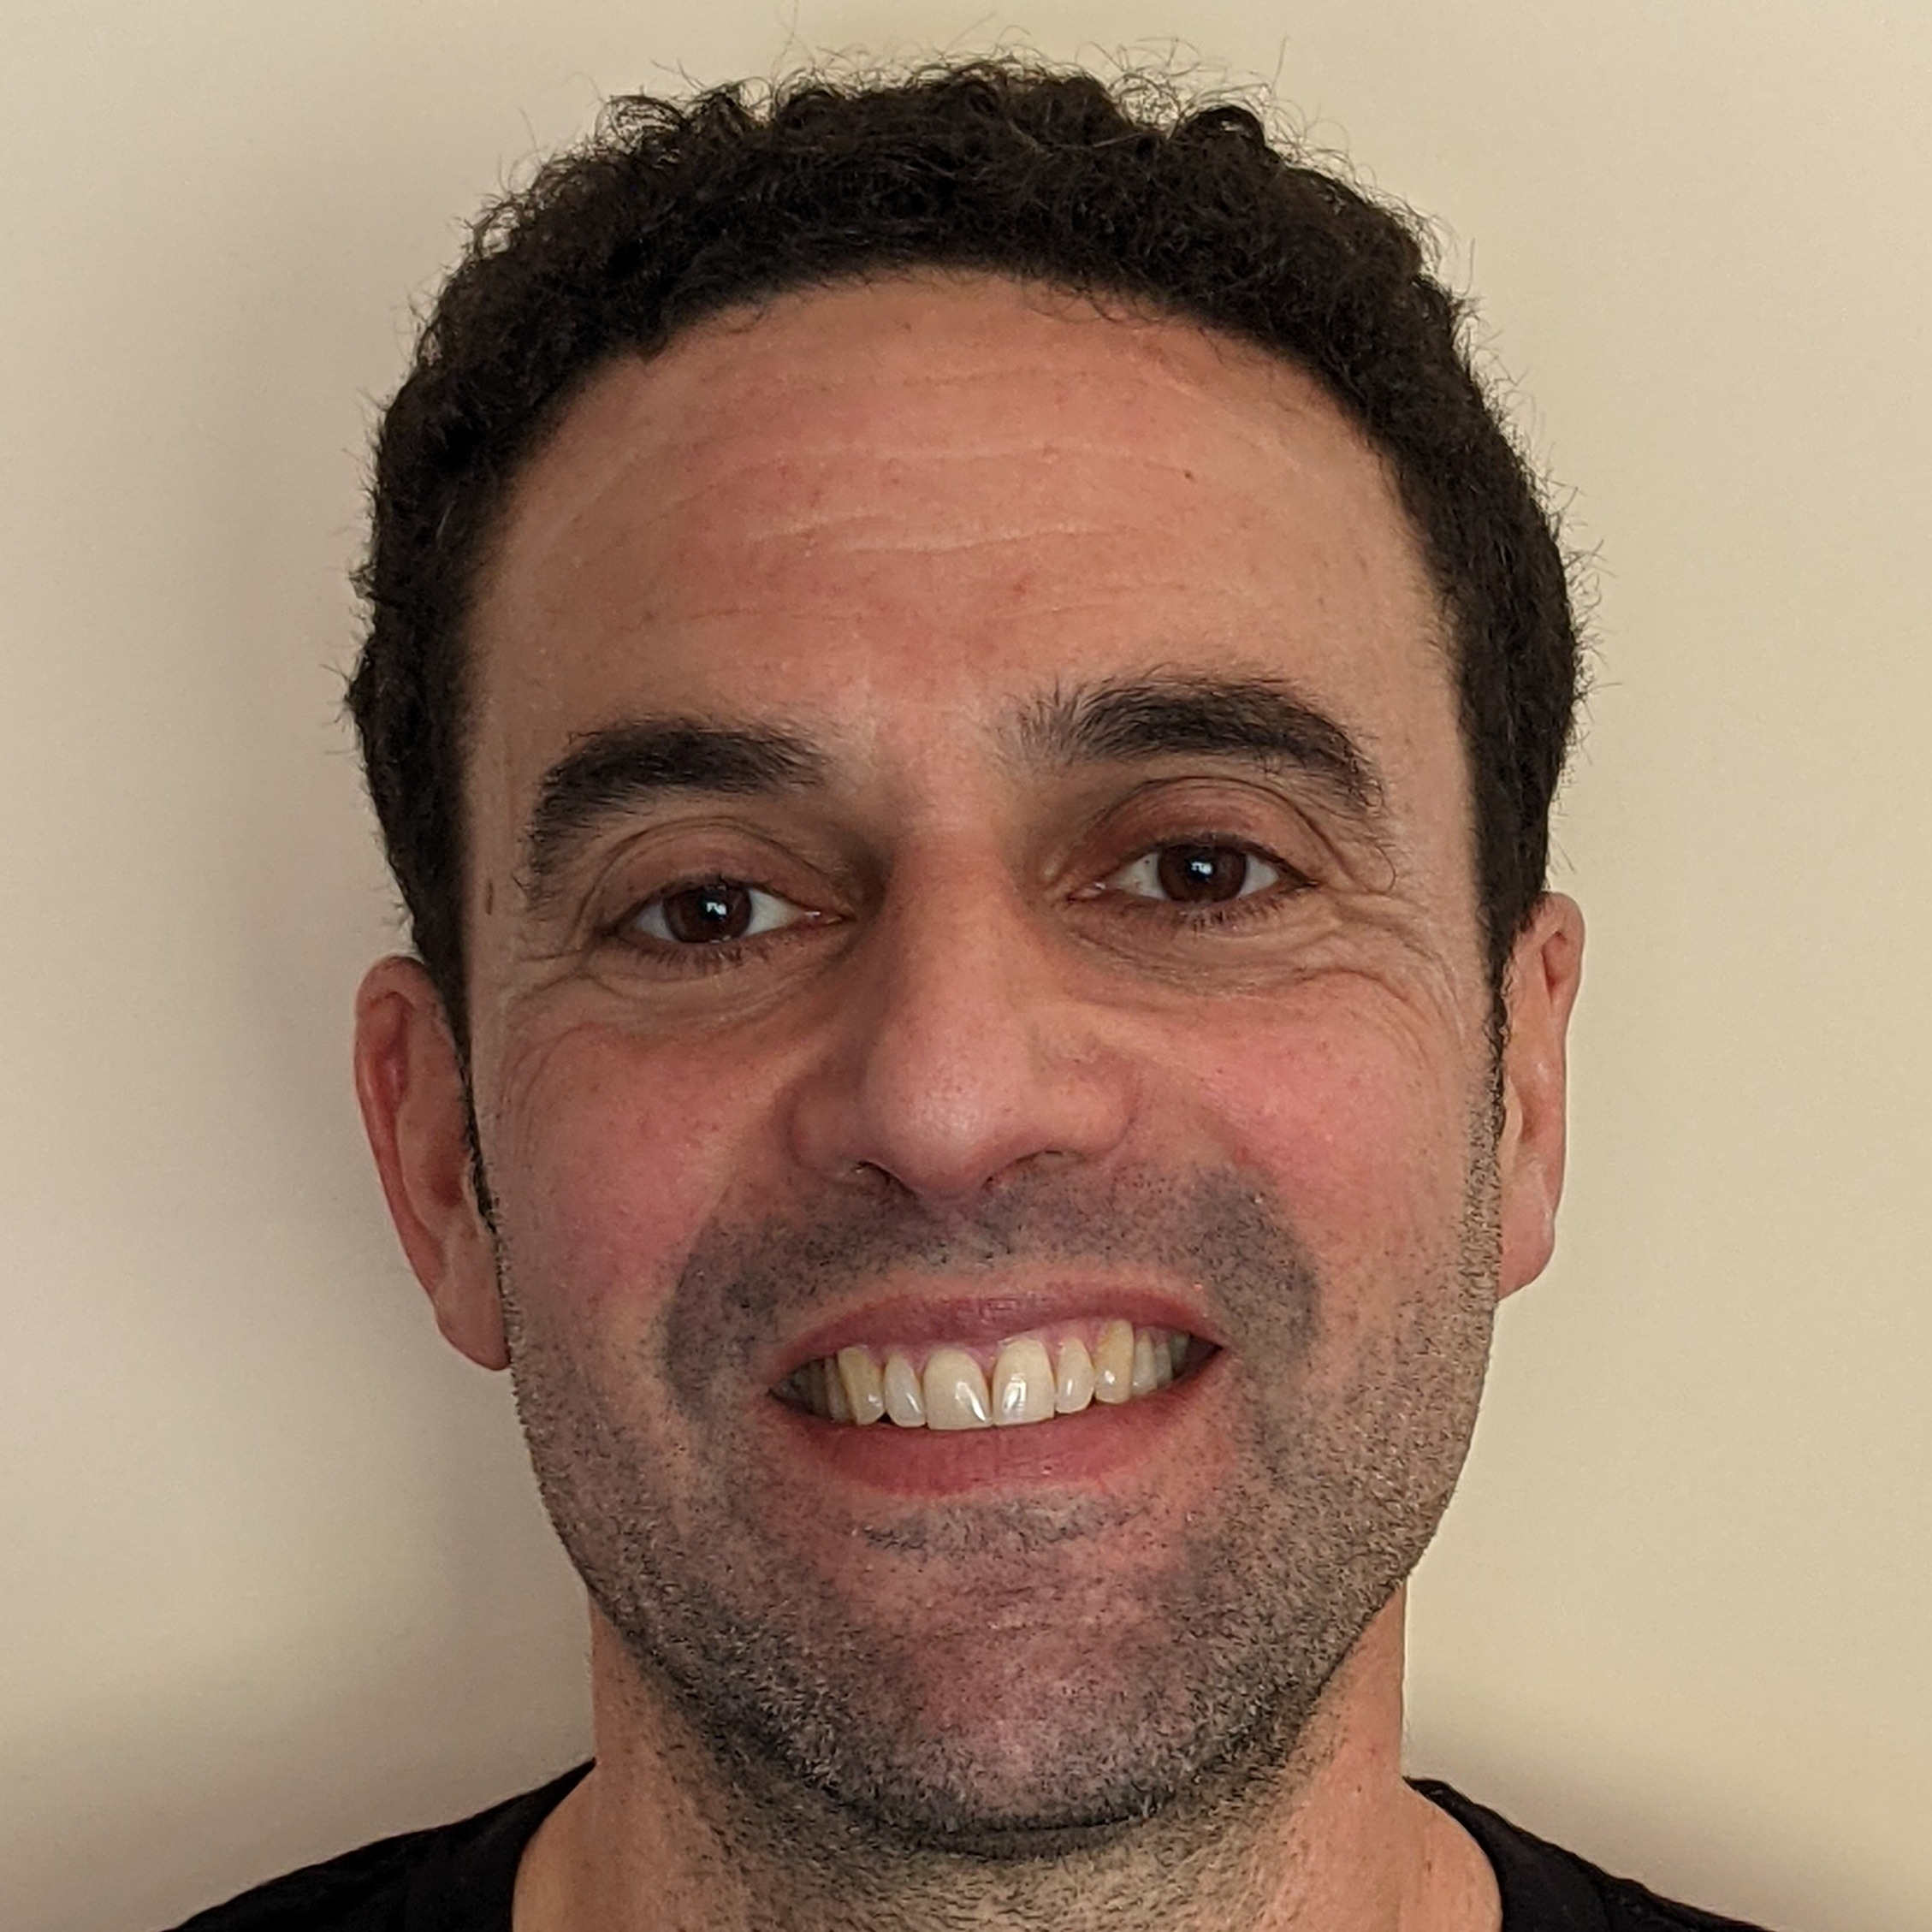 Jeremy Sussman, a White man with short black hair and a black shirt.